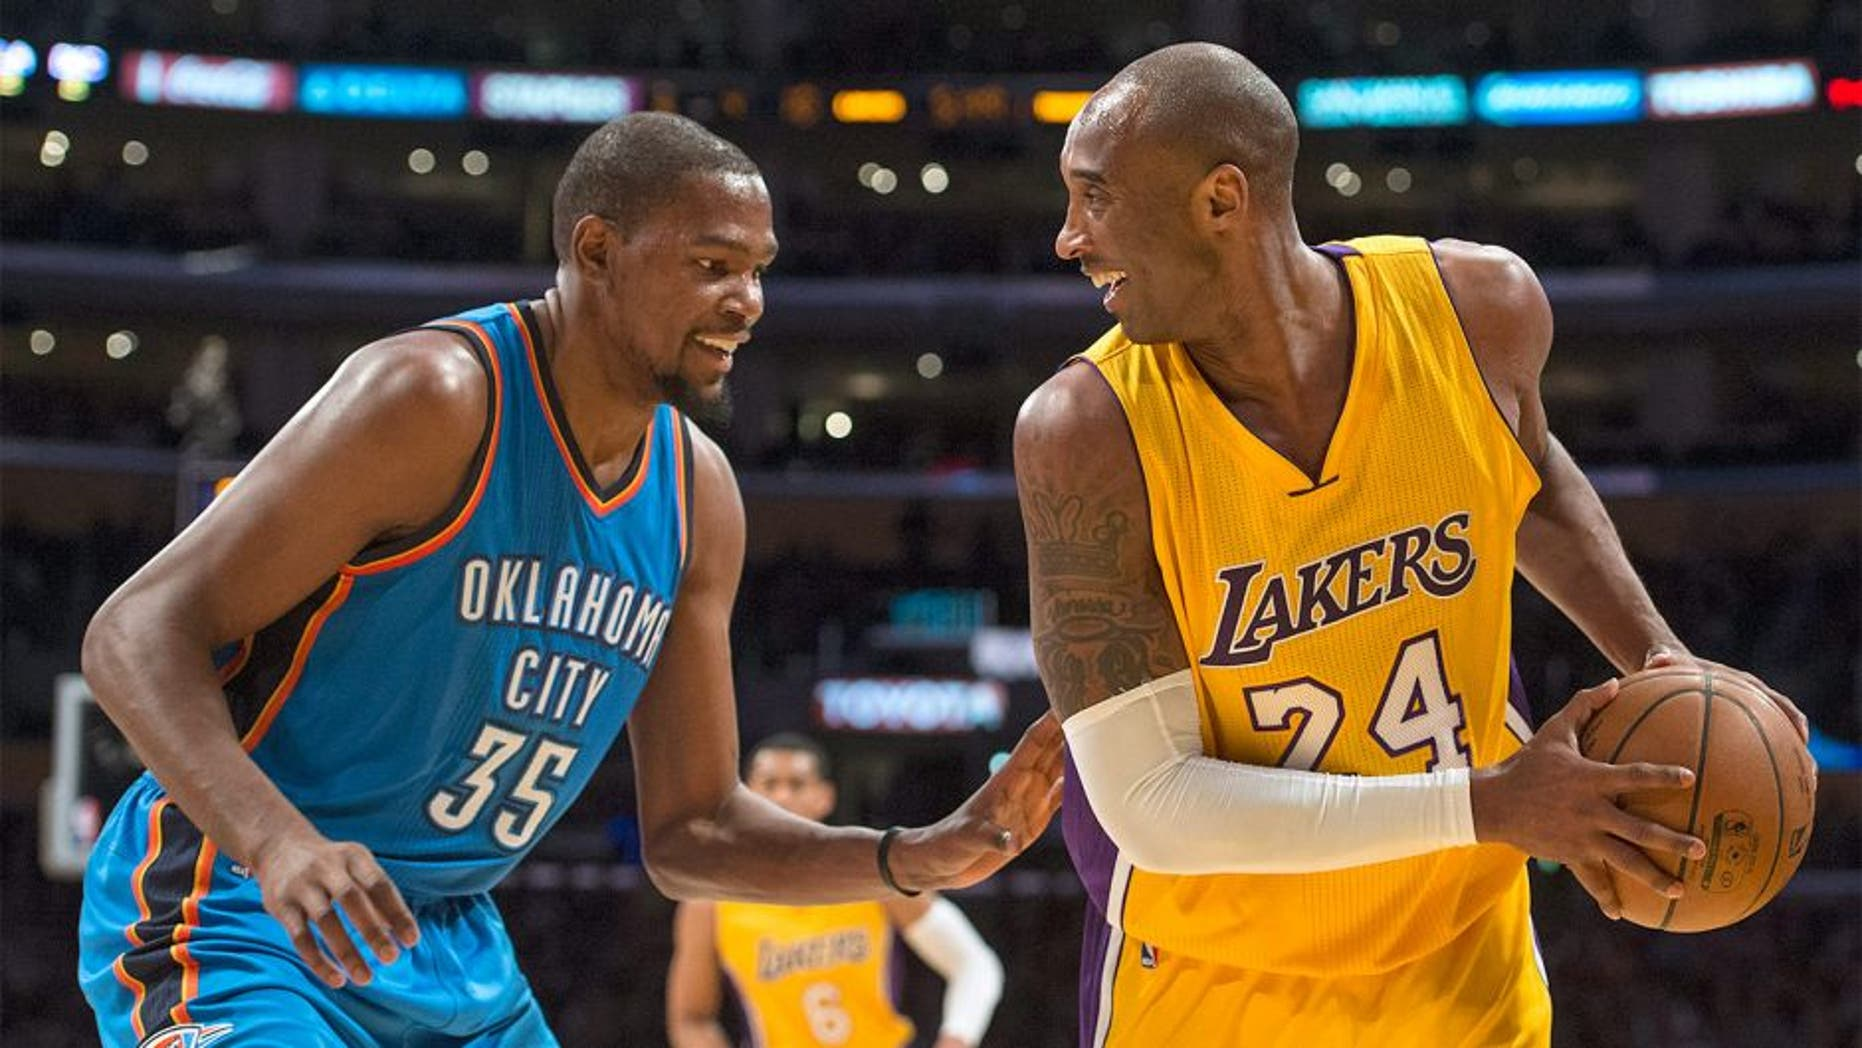 Los Angeles Lakers' Kobe Bryant, right, smiles with Oklahoma City Thunder's Kevin Durant during an NBA basketball game Wednesday, Dec. 23, 2015, in Los Angeles. (Kyusung Gong/The Orange County Register via AP)